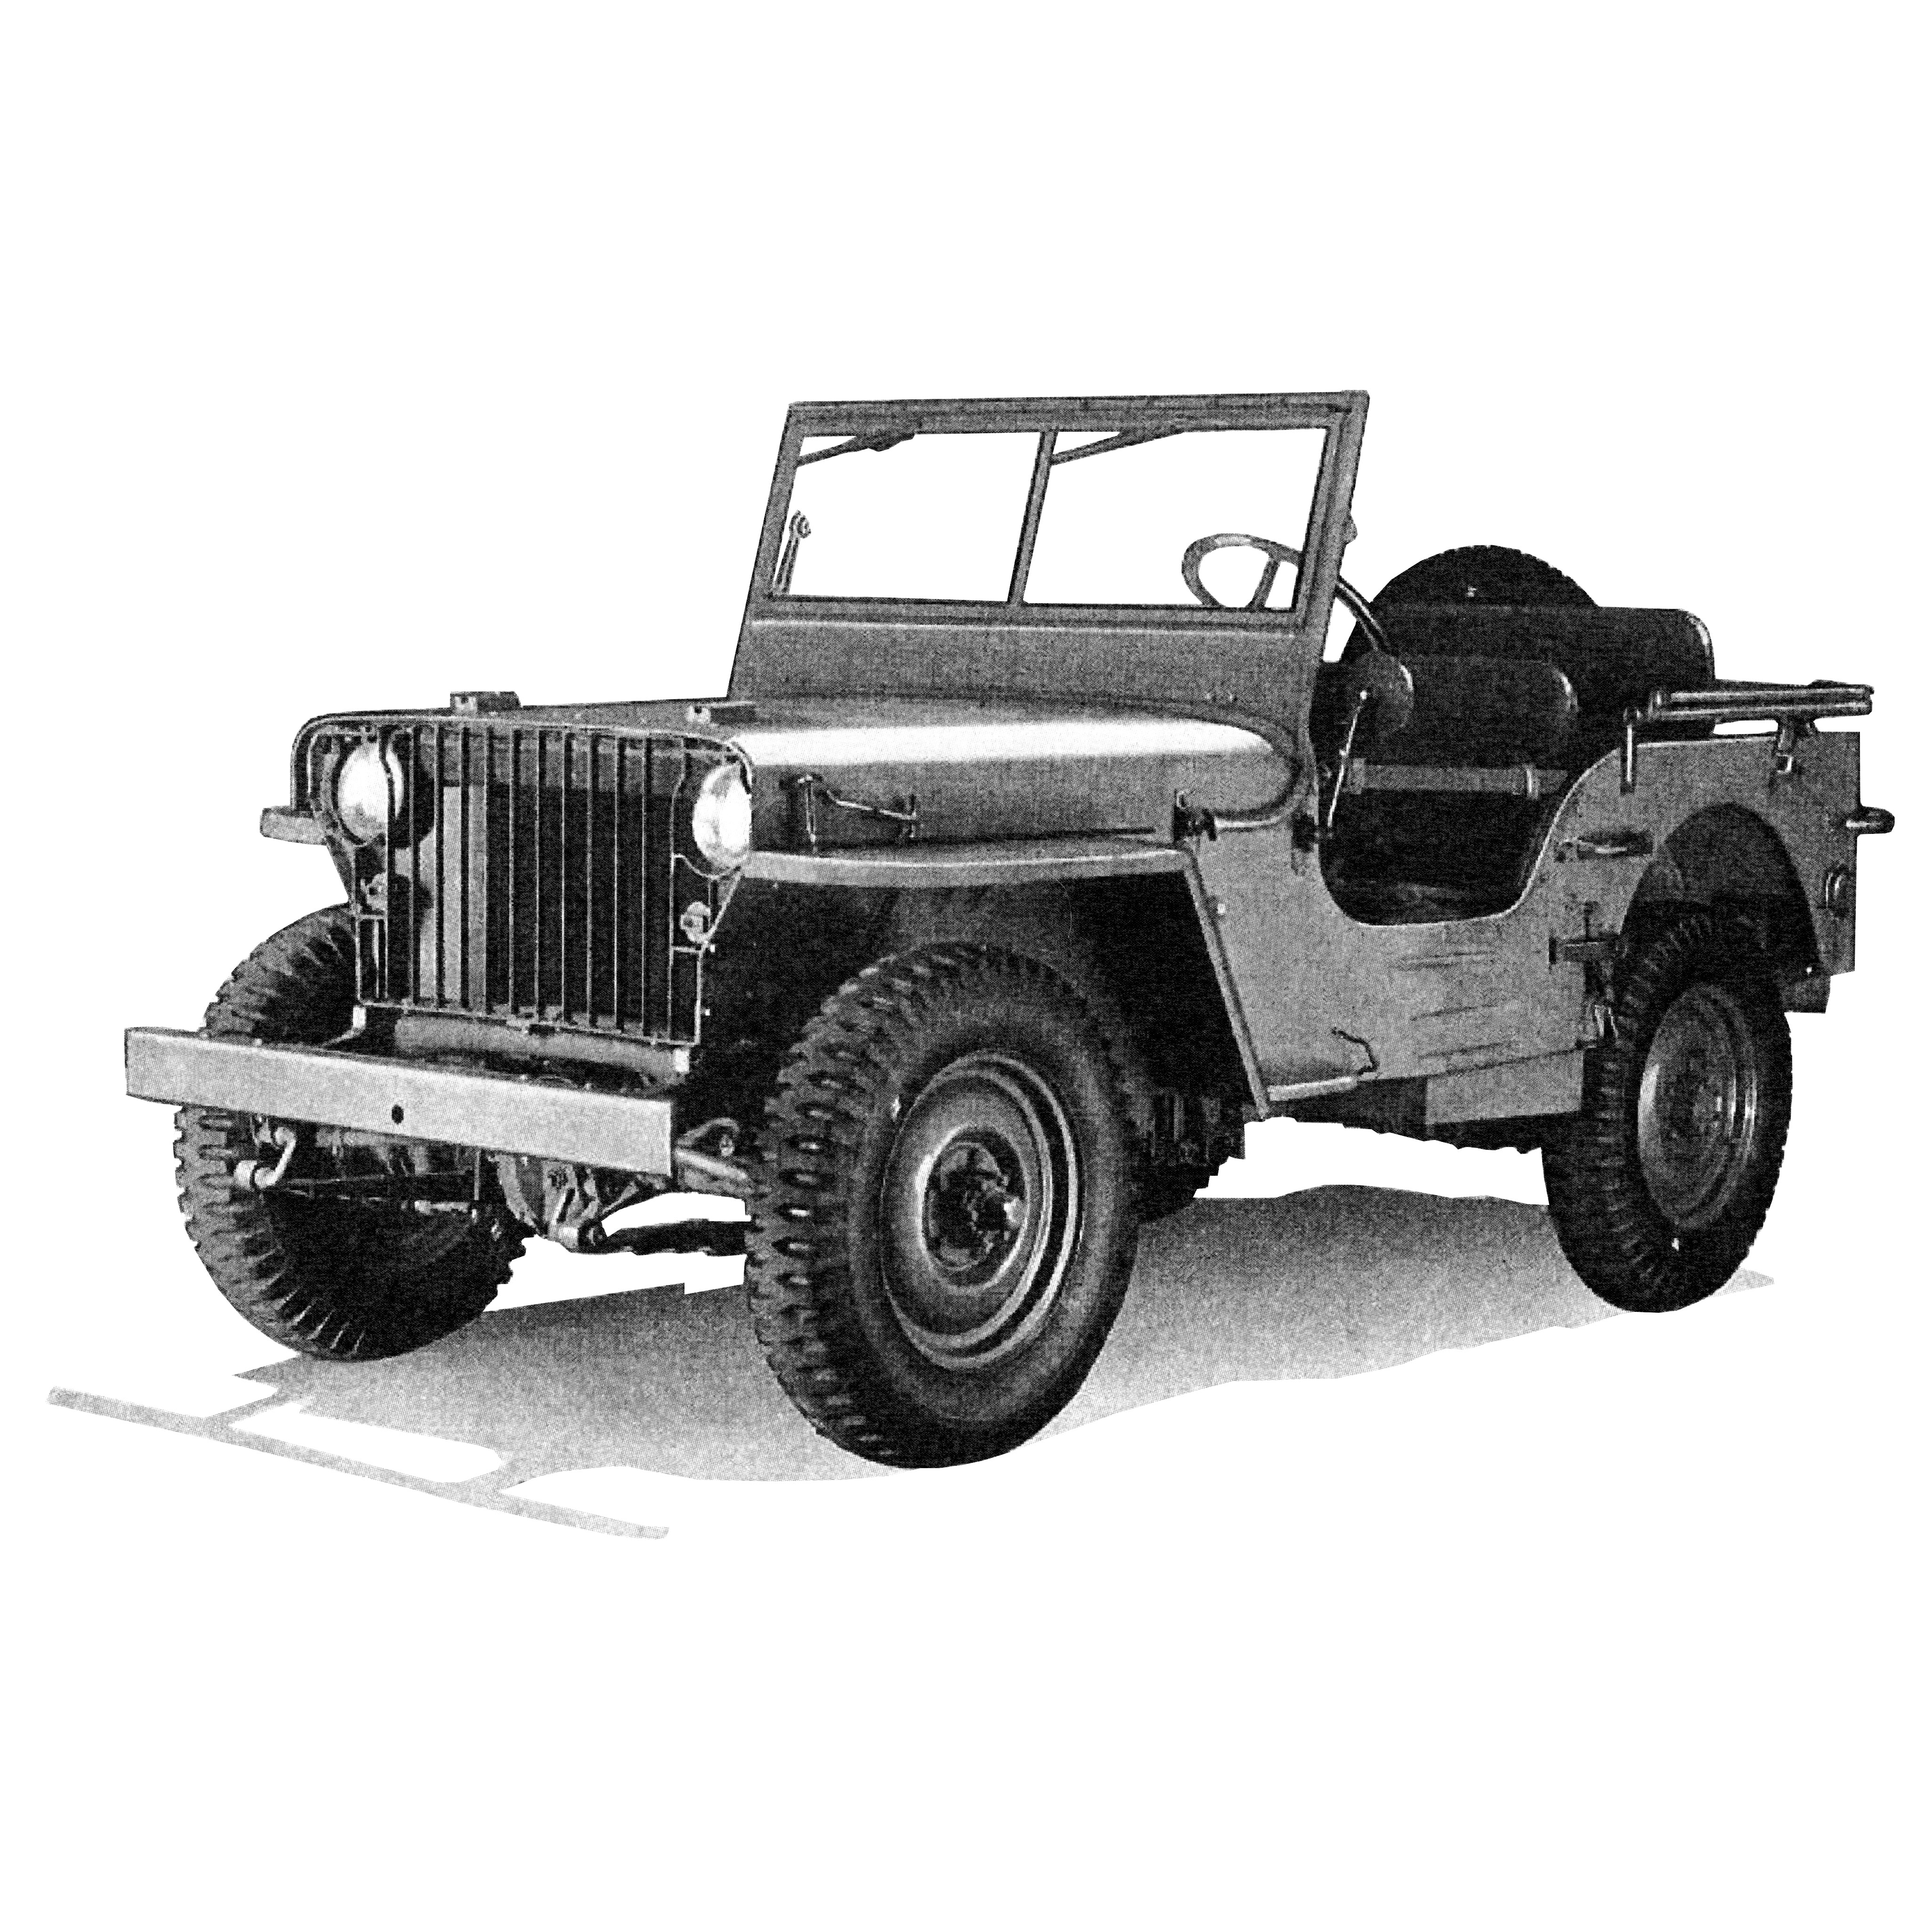 Illustration - Willys MB